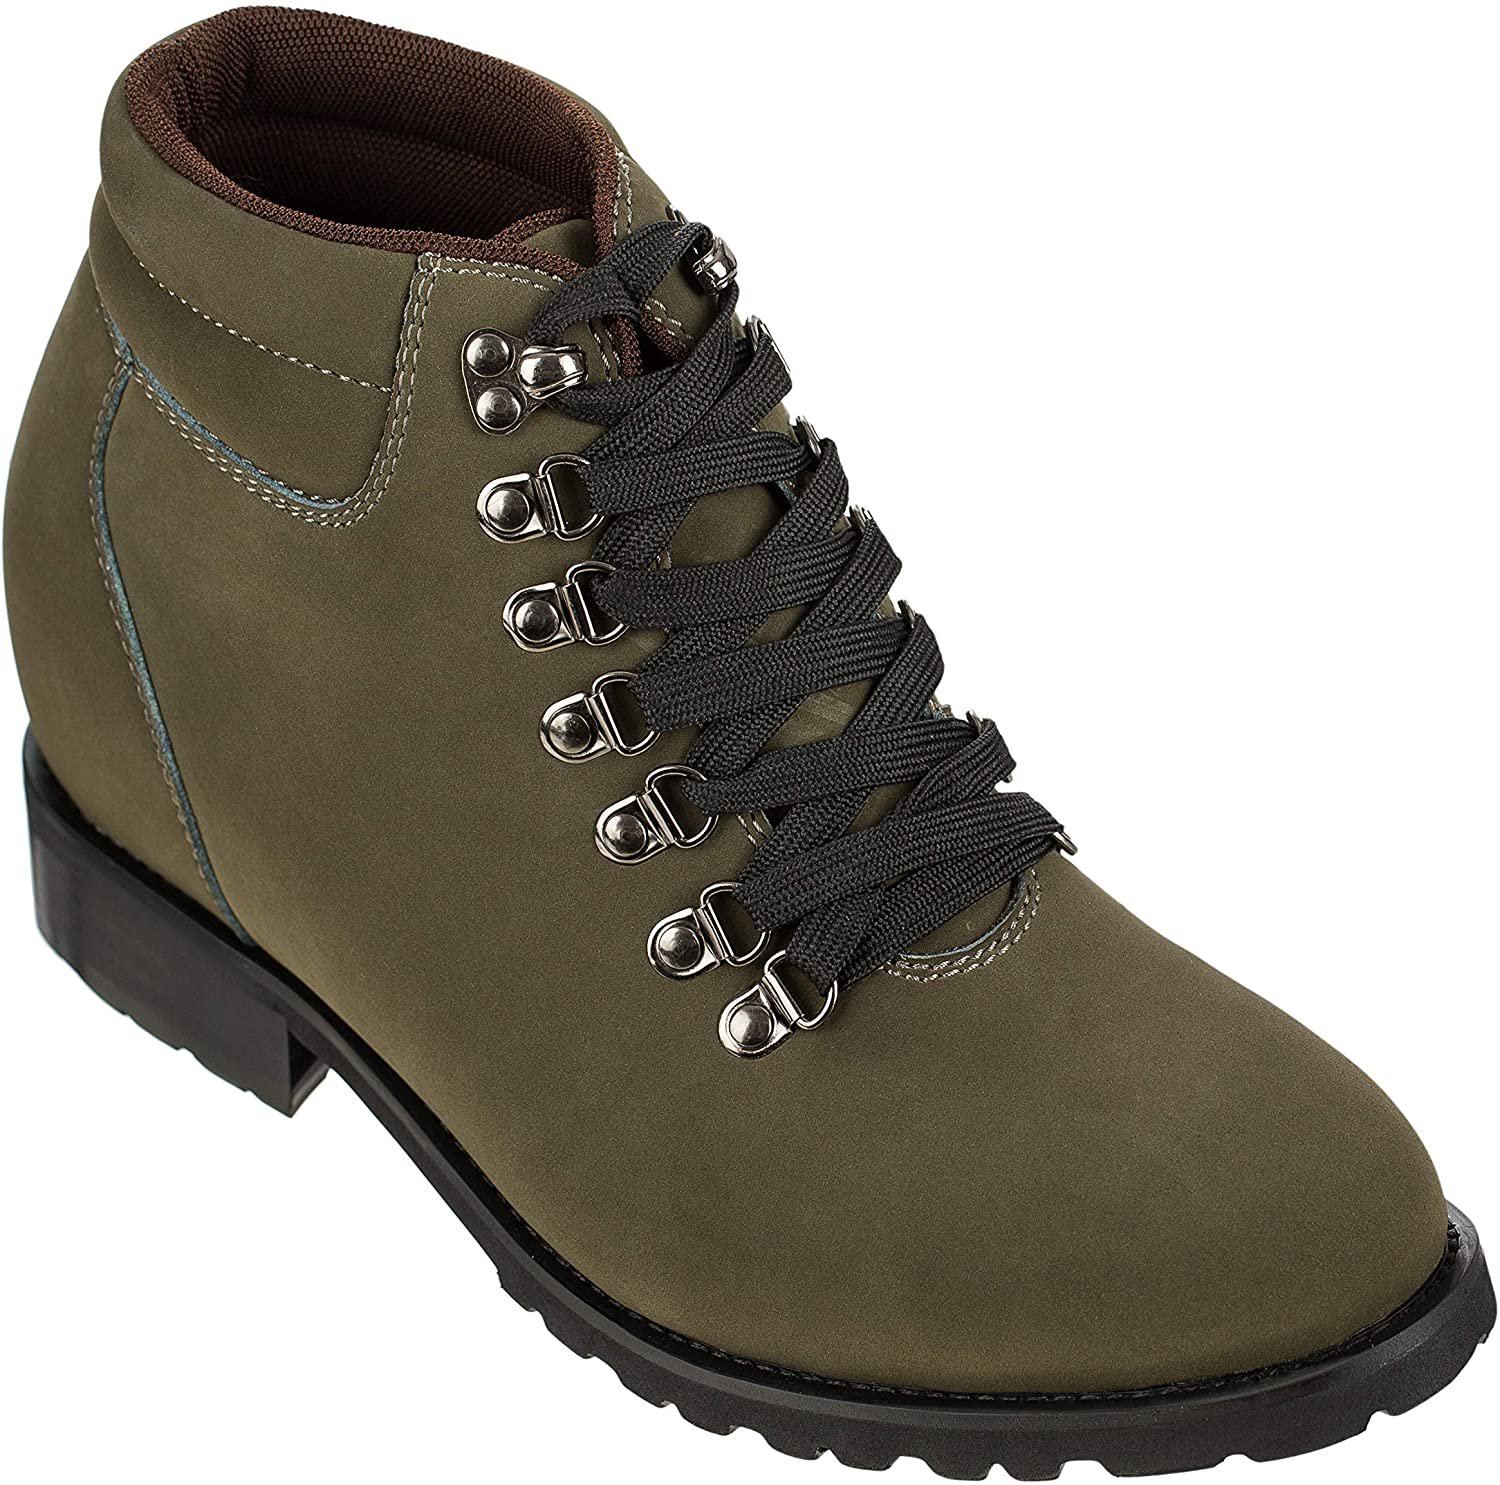 Calden Men's Invisible Height Increasing Elevator Shoes - Nubuck Grey Leather Lace-up Super Lightweight Ankle Boots - 3.3 Inches Taller - K289022